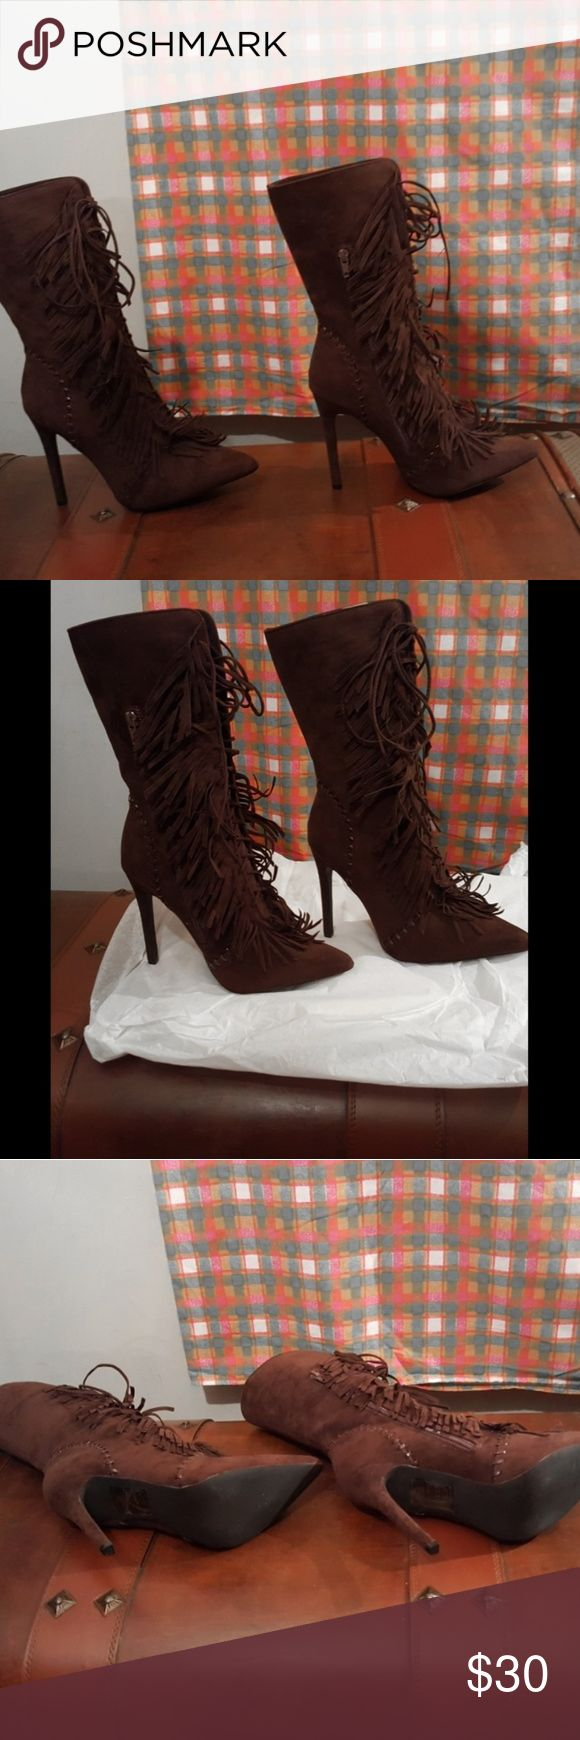 Brown Boots Beautiful  Deep Brown Boots! New never worn Shoe Dazzle Shoes